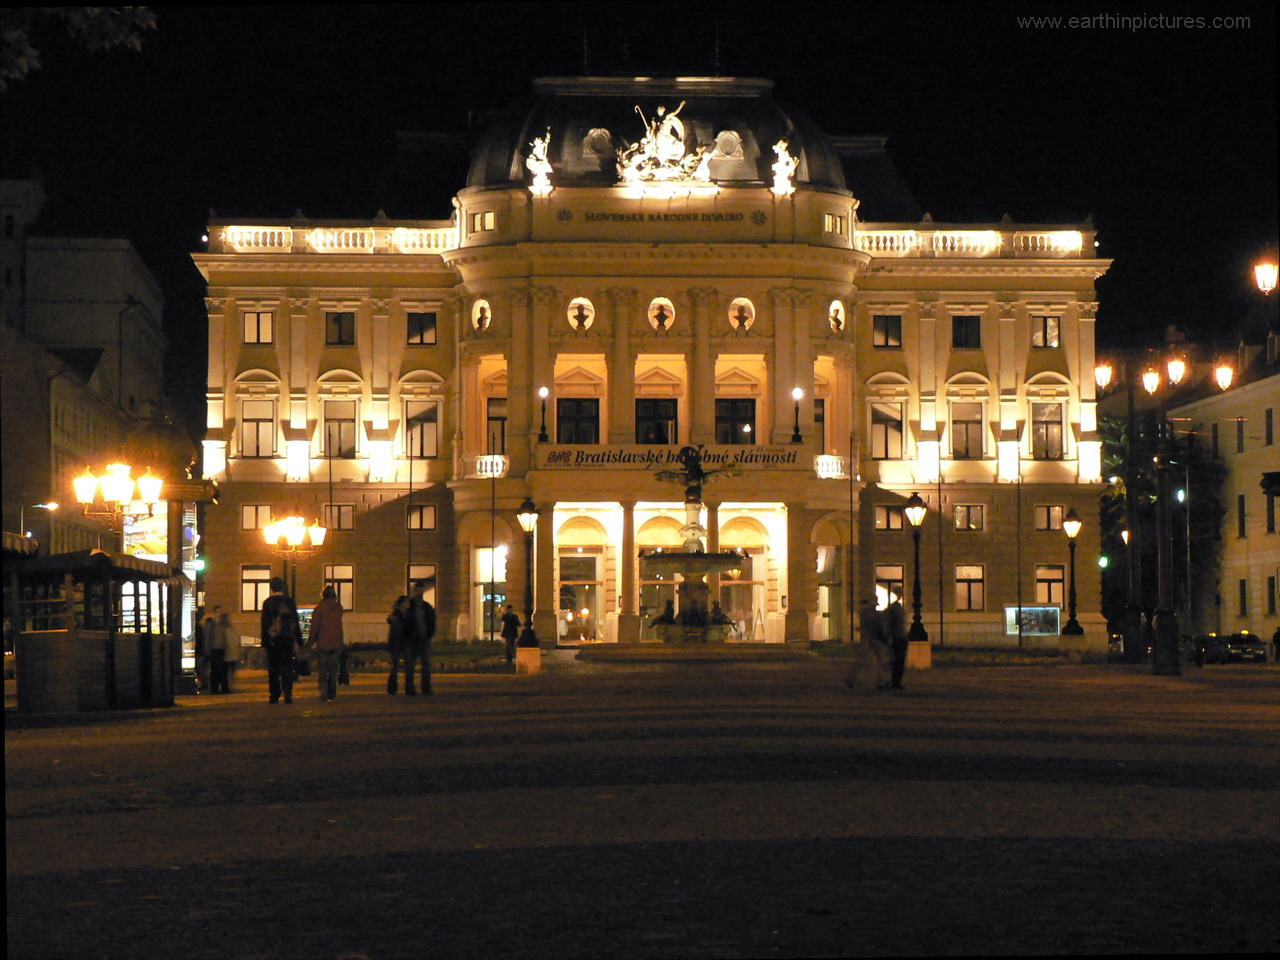 Slovak National Theatre at night ( 1280x960 )